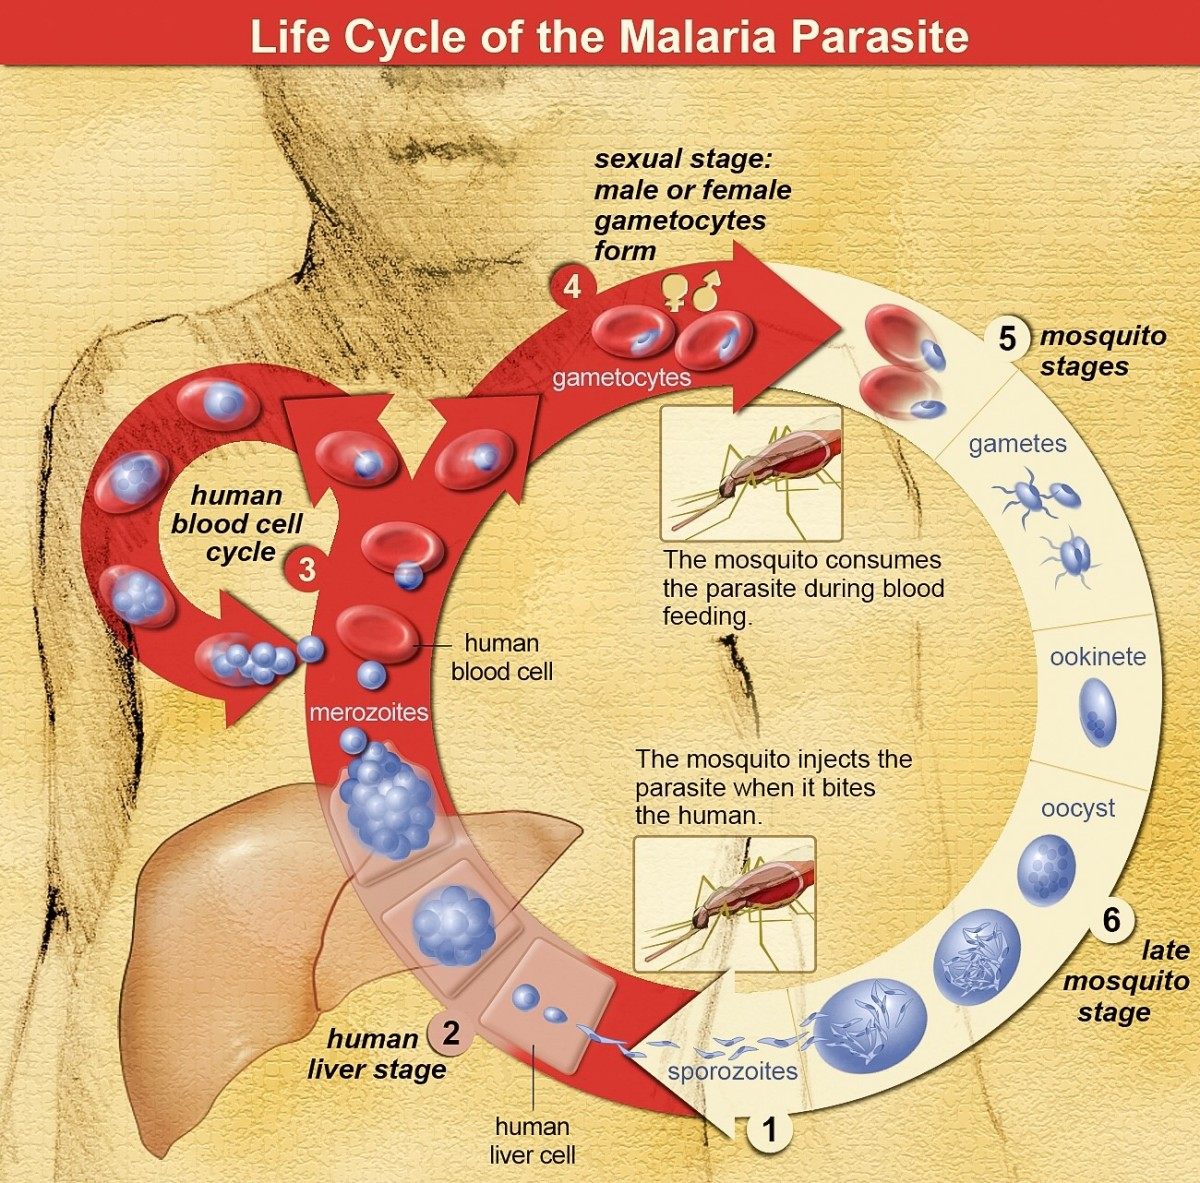 The malaria parasite in a human and a female mosquito